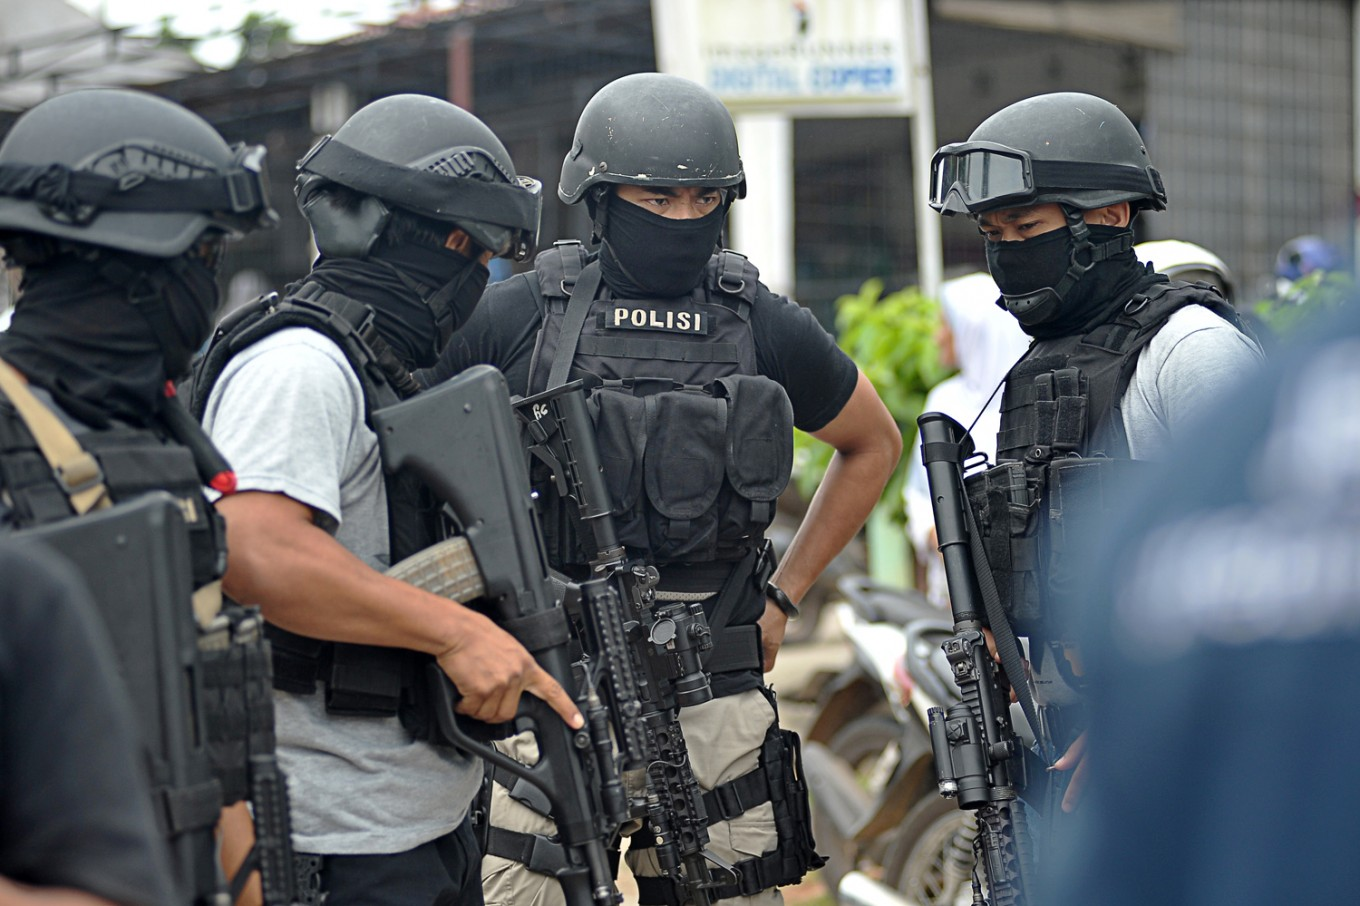 Personnel of the National Police's Densus 88 counterterrorism squad stand guard on May 30 in Jambi. (Antara/Wahdi Septiawan)